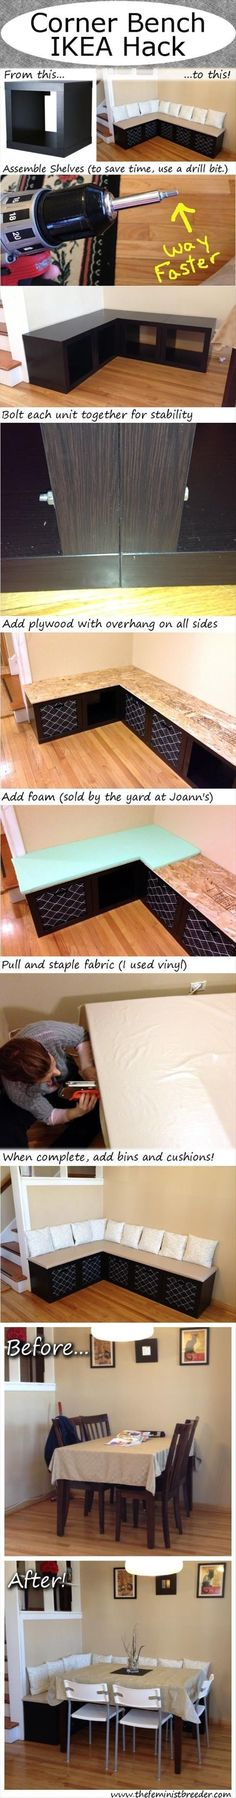 dining rooms, ikea wall, kitchen tables, breakfast nooks, craft idea, wall shelves, kitchen benches, corner bench, storage benches